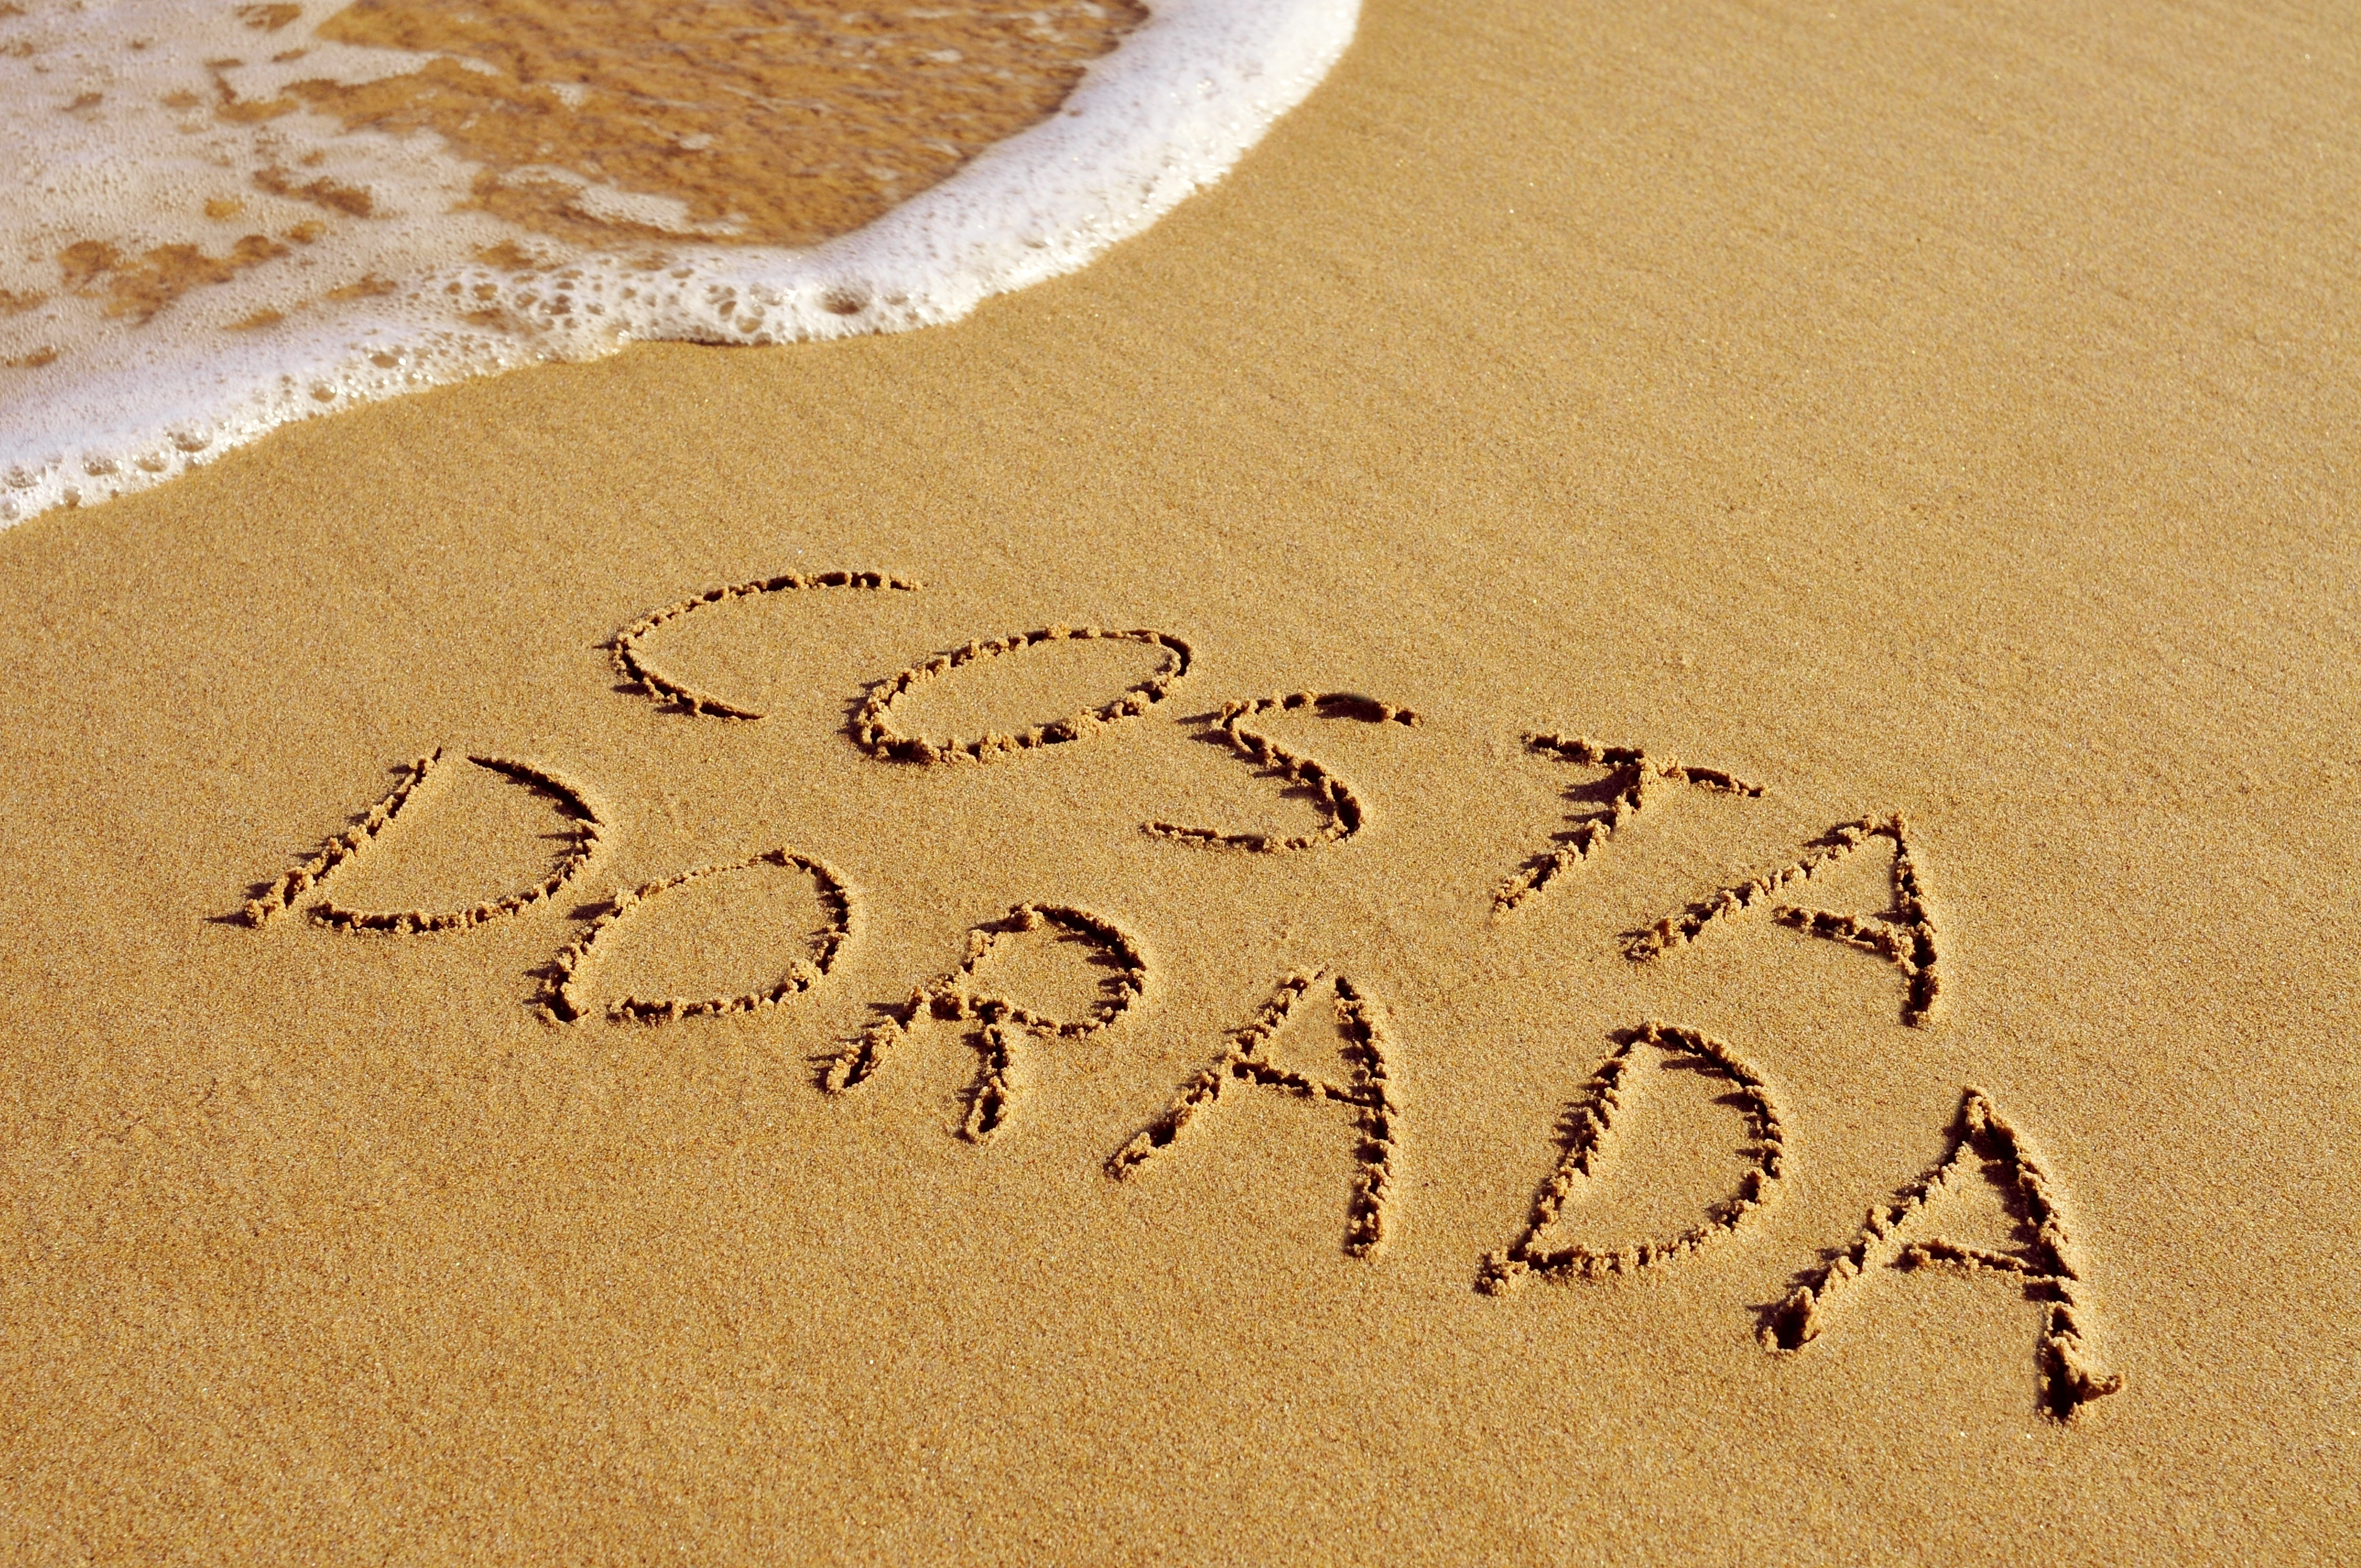 Big costa dorada  the name of an area of the mediterranean coast of spain  written in the sand of a beach